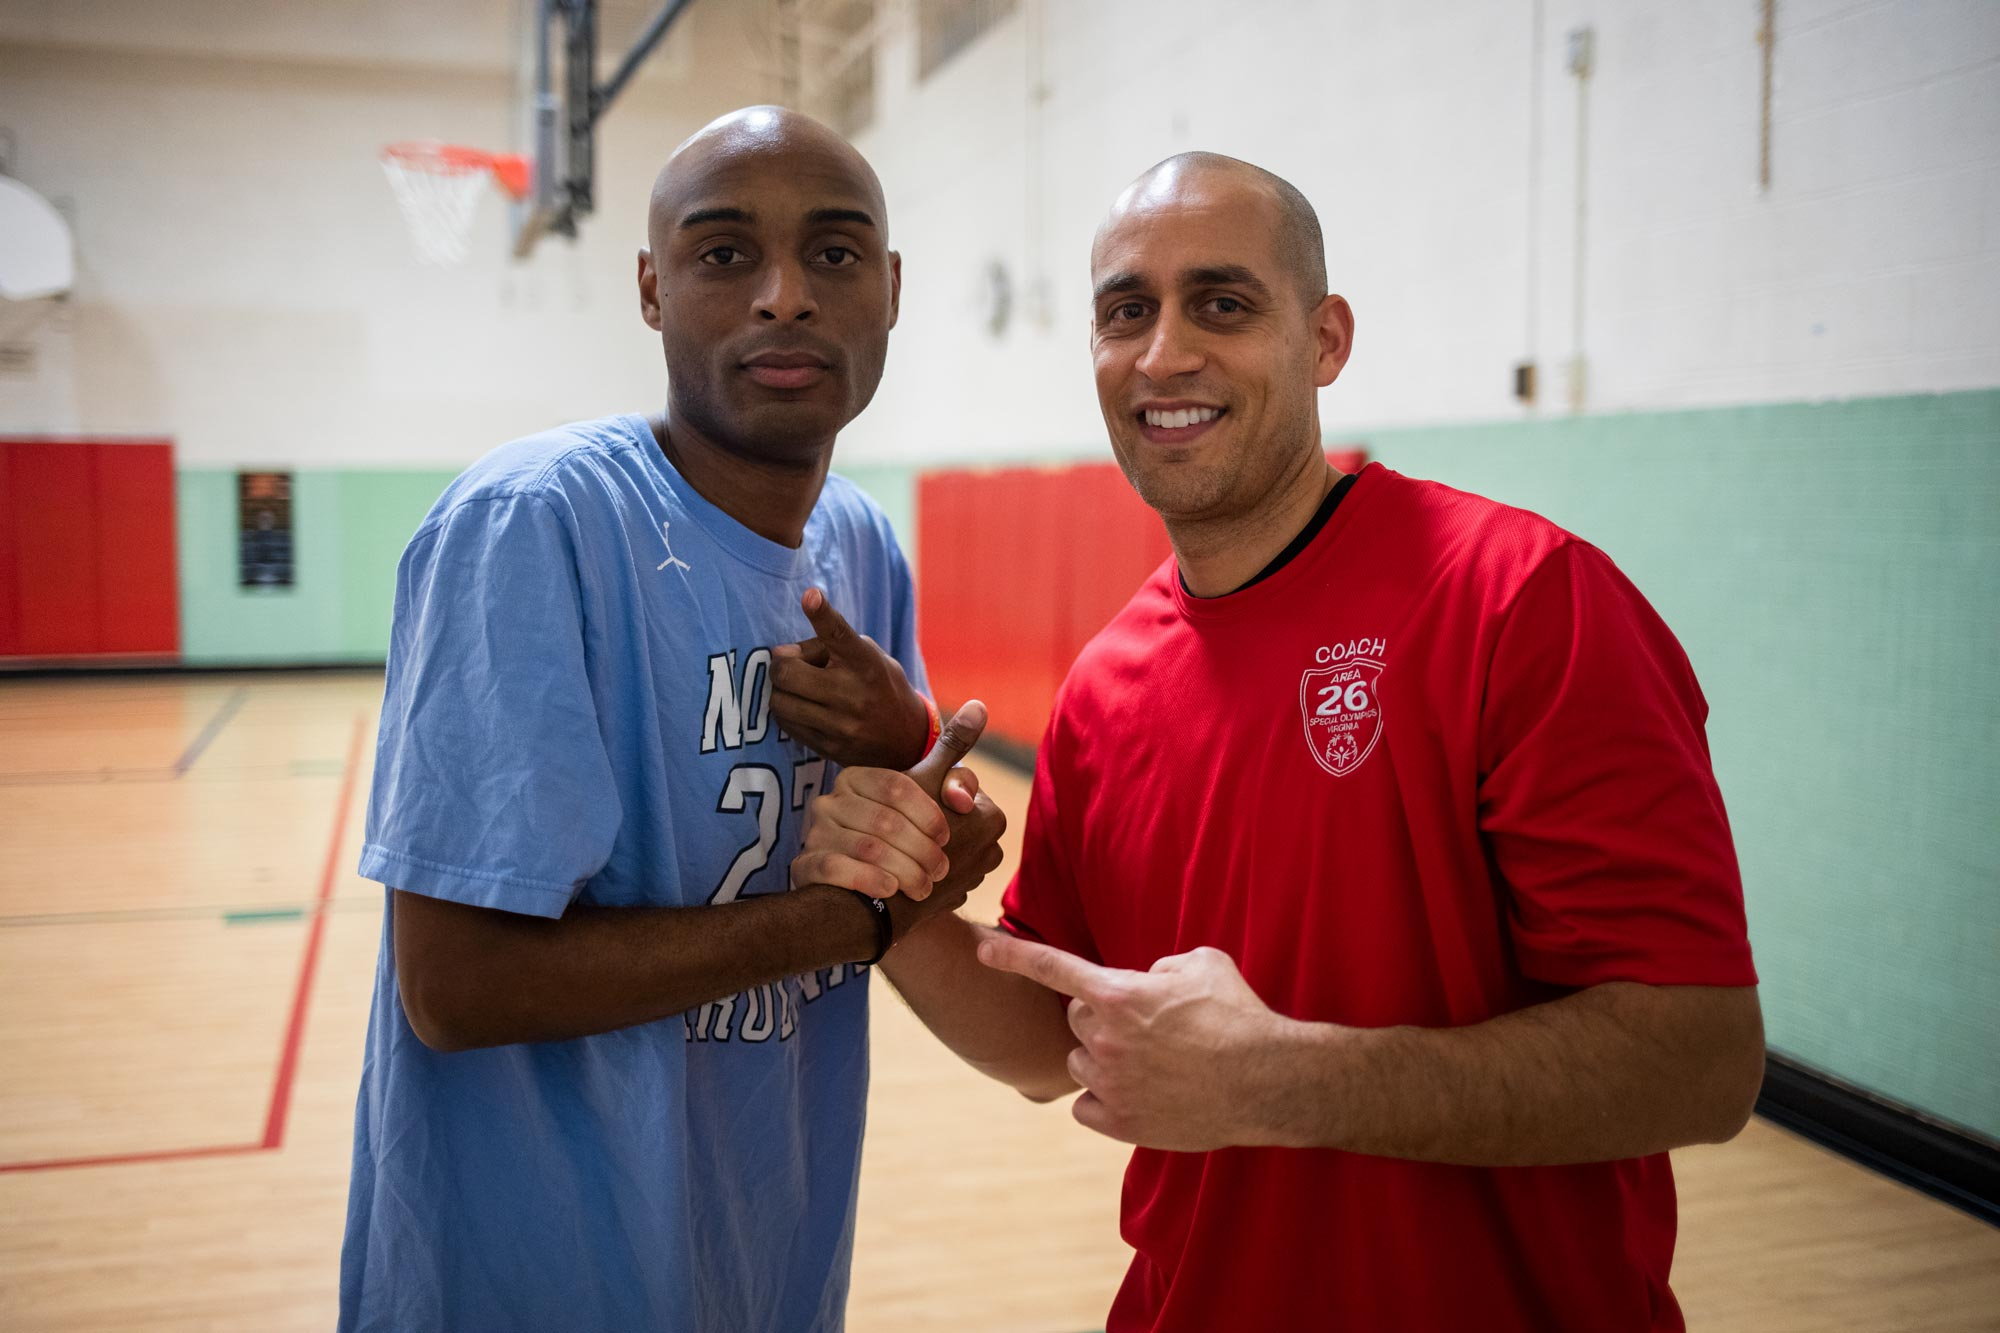 Emilio Alonso, right, has coached Special Olympian Chris Carter for eight years.